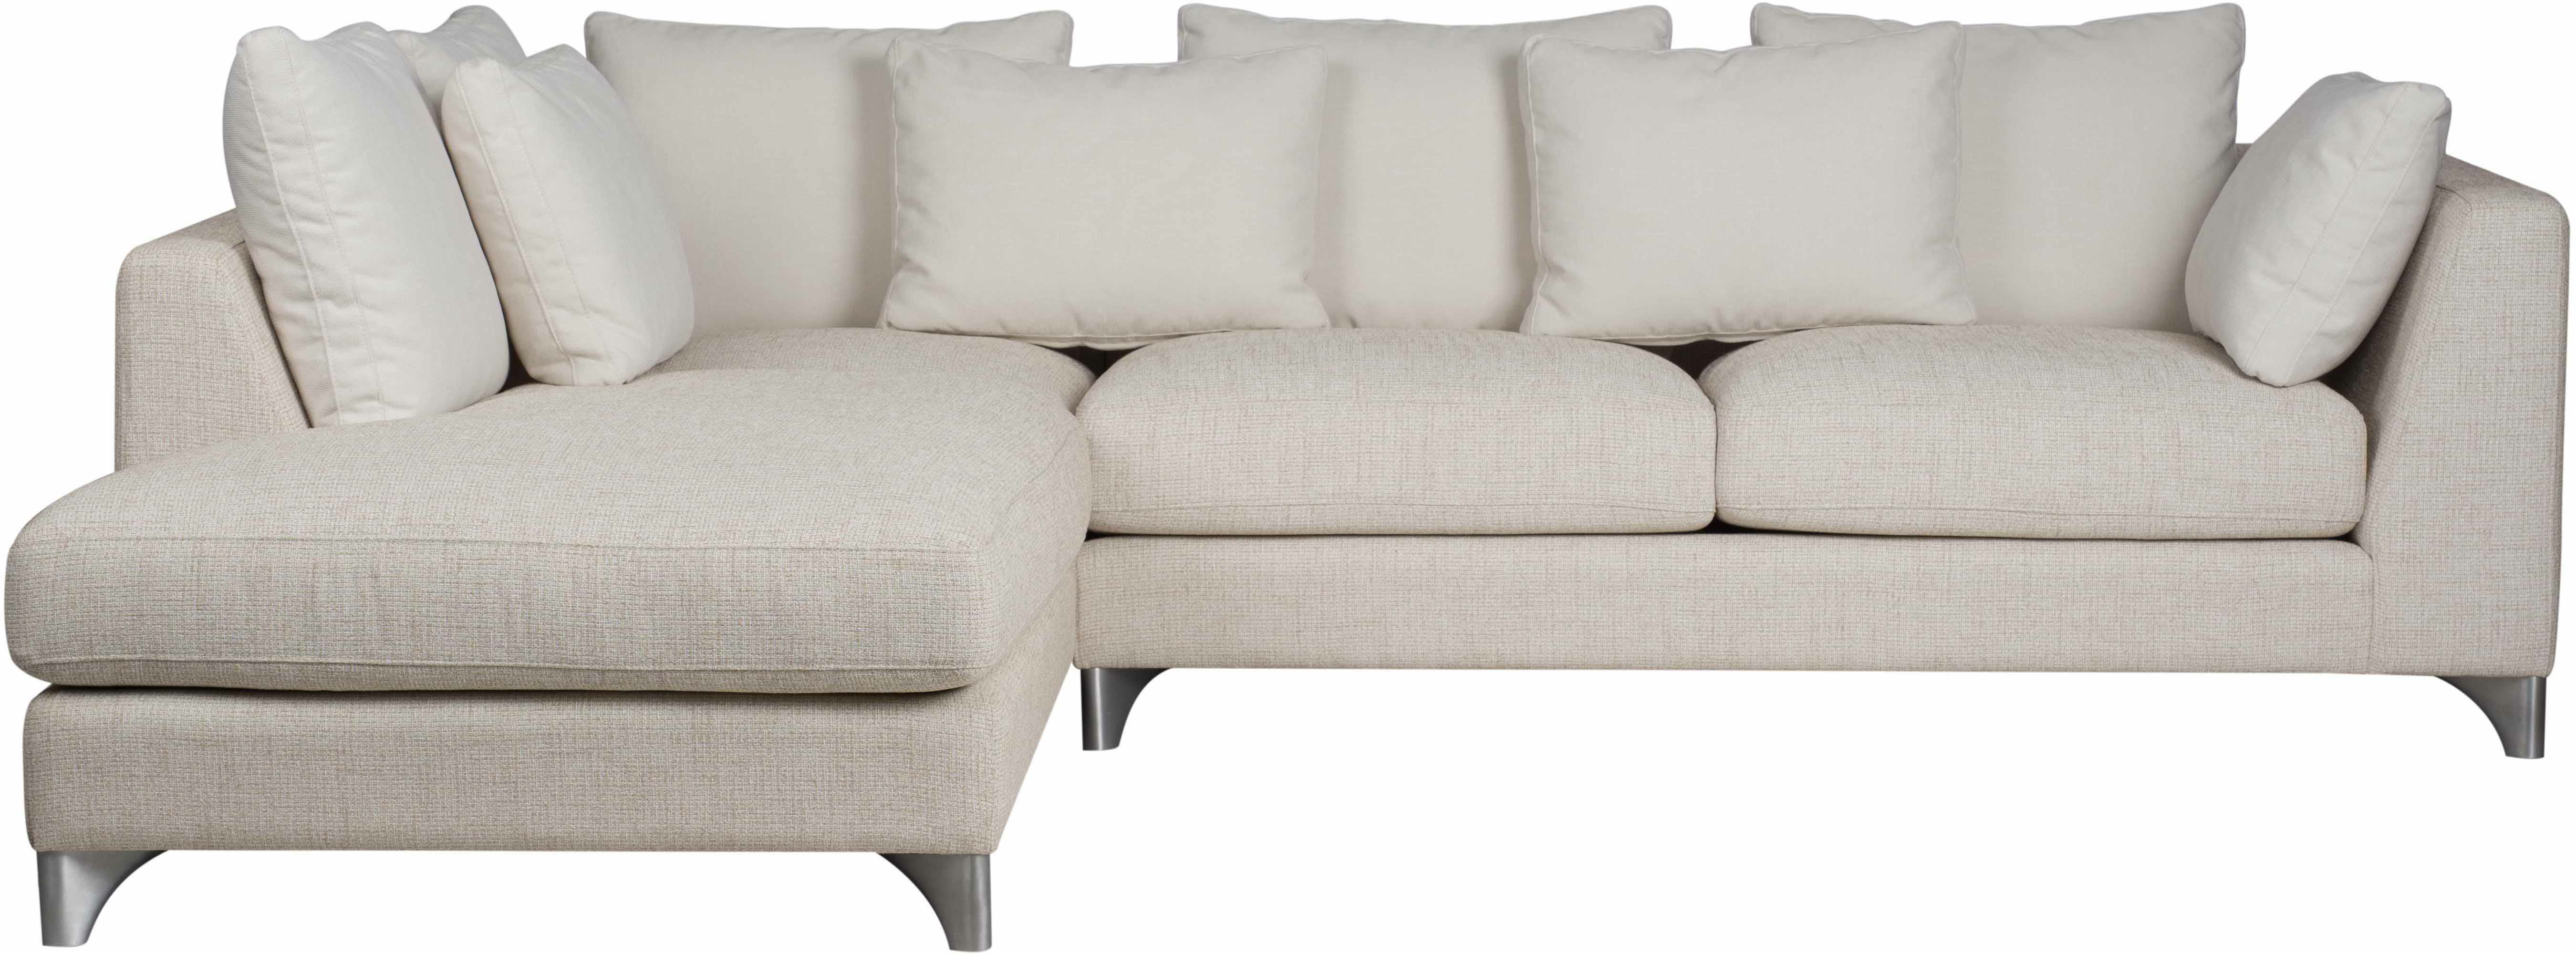 Also available in different fabrics sizes and finishes please